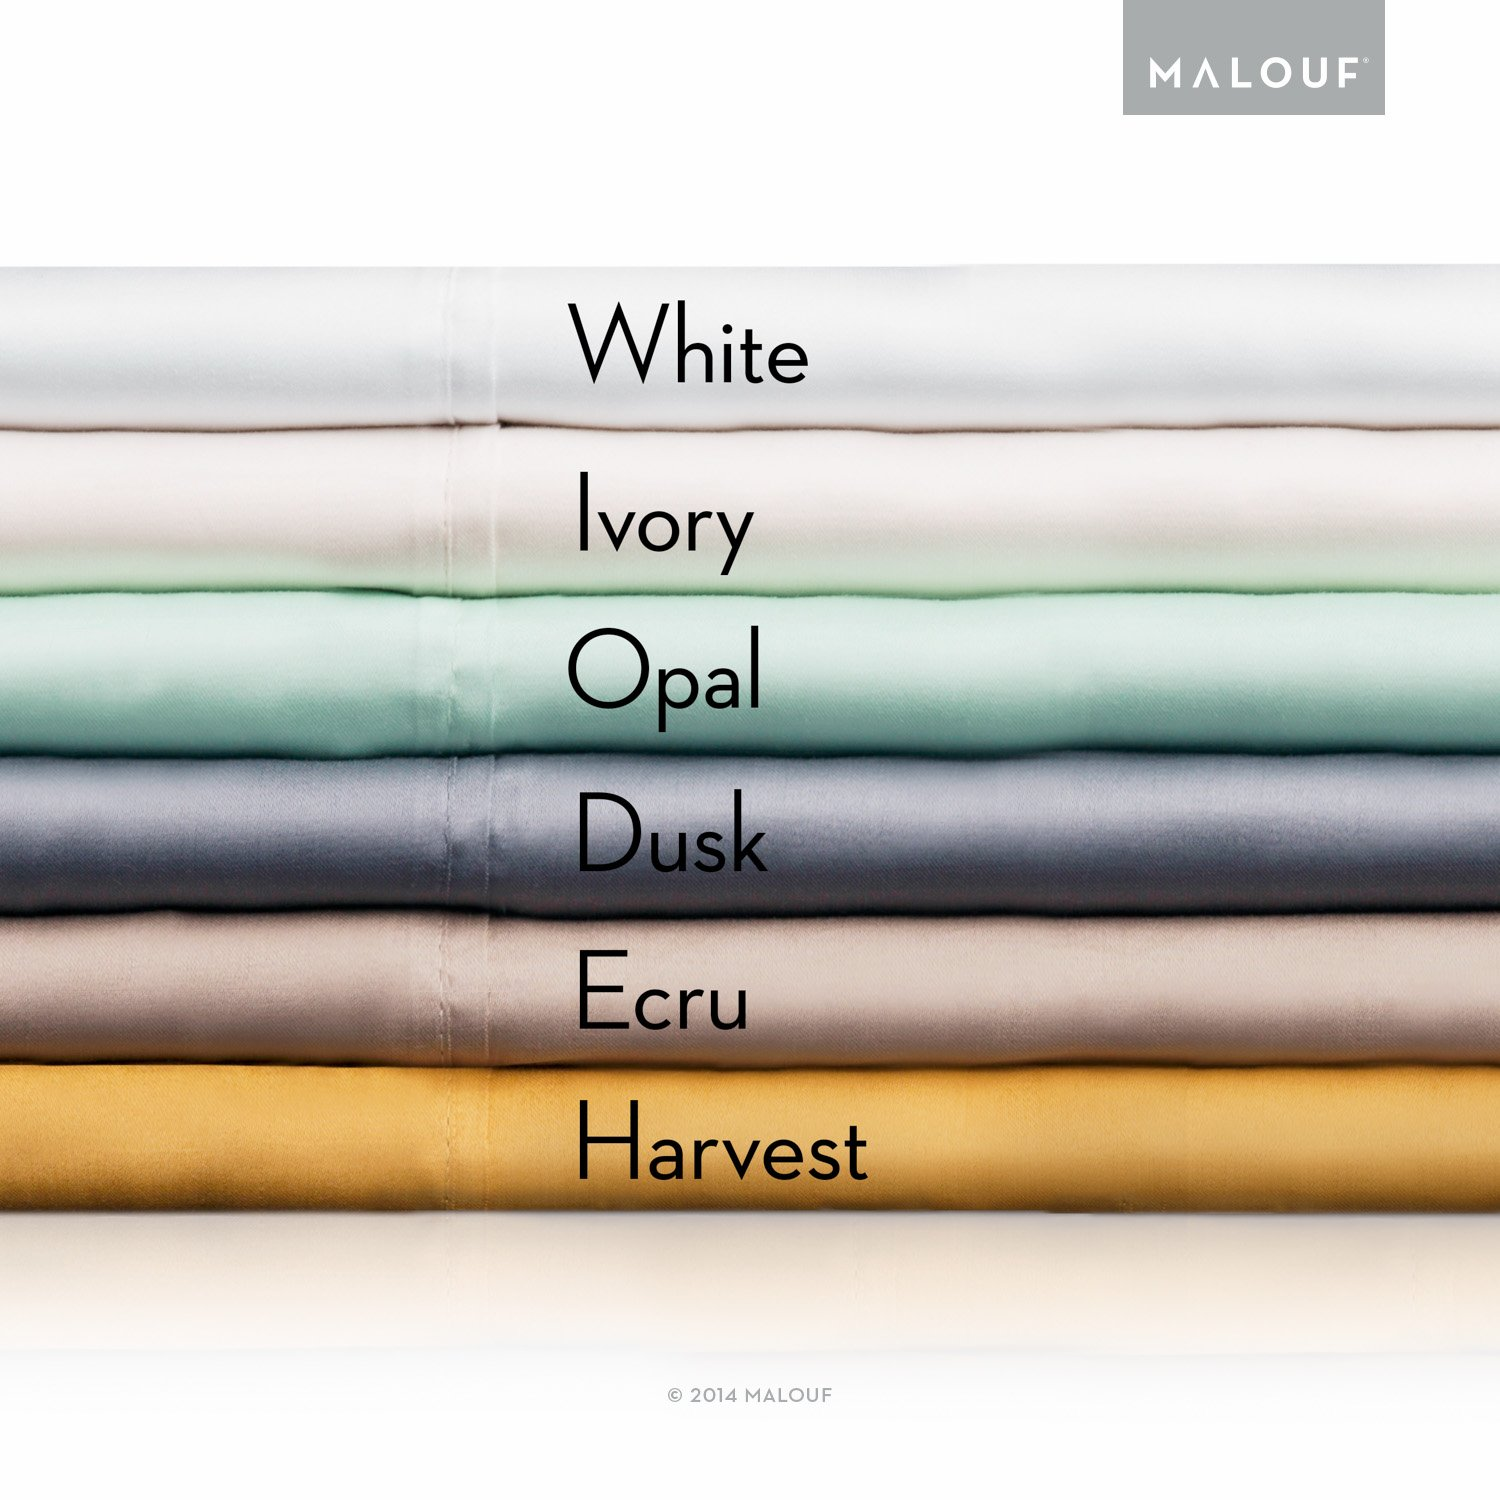 Britannica Home Fashions Tencel Sheets - Amazon com woven tencel sheet set silky soft refreshing and eco friendly queen sheets dusk 4pc home kitchen